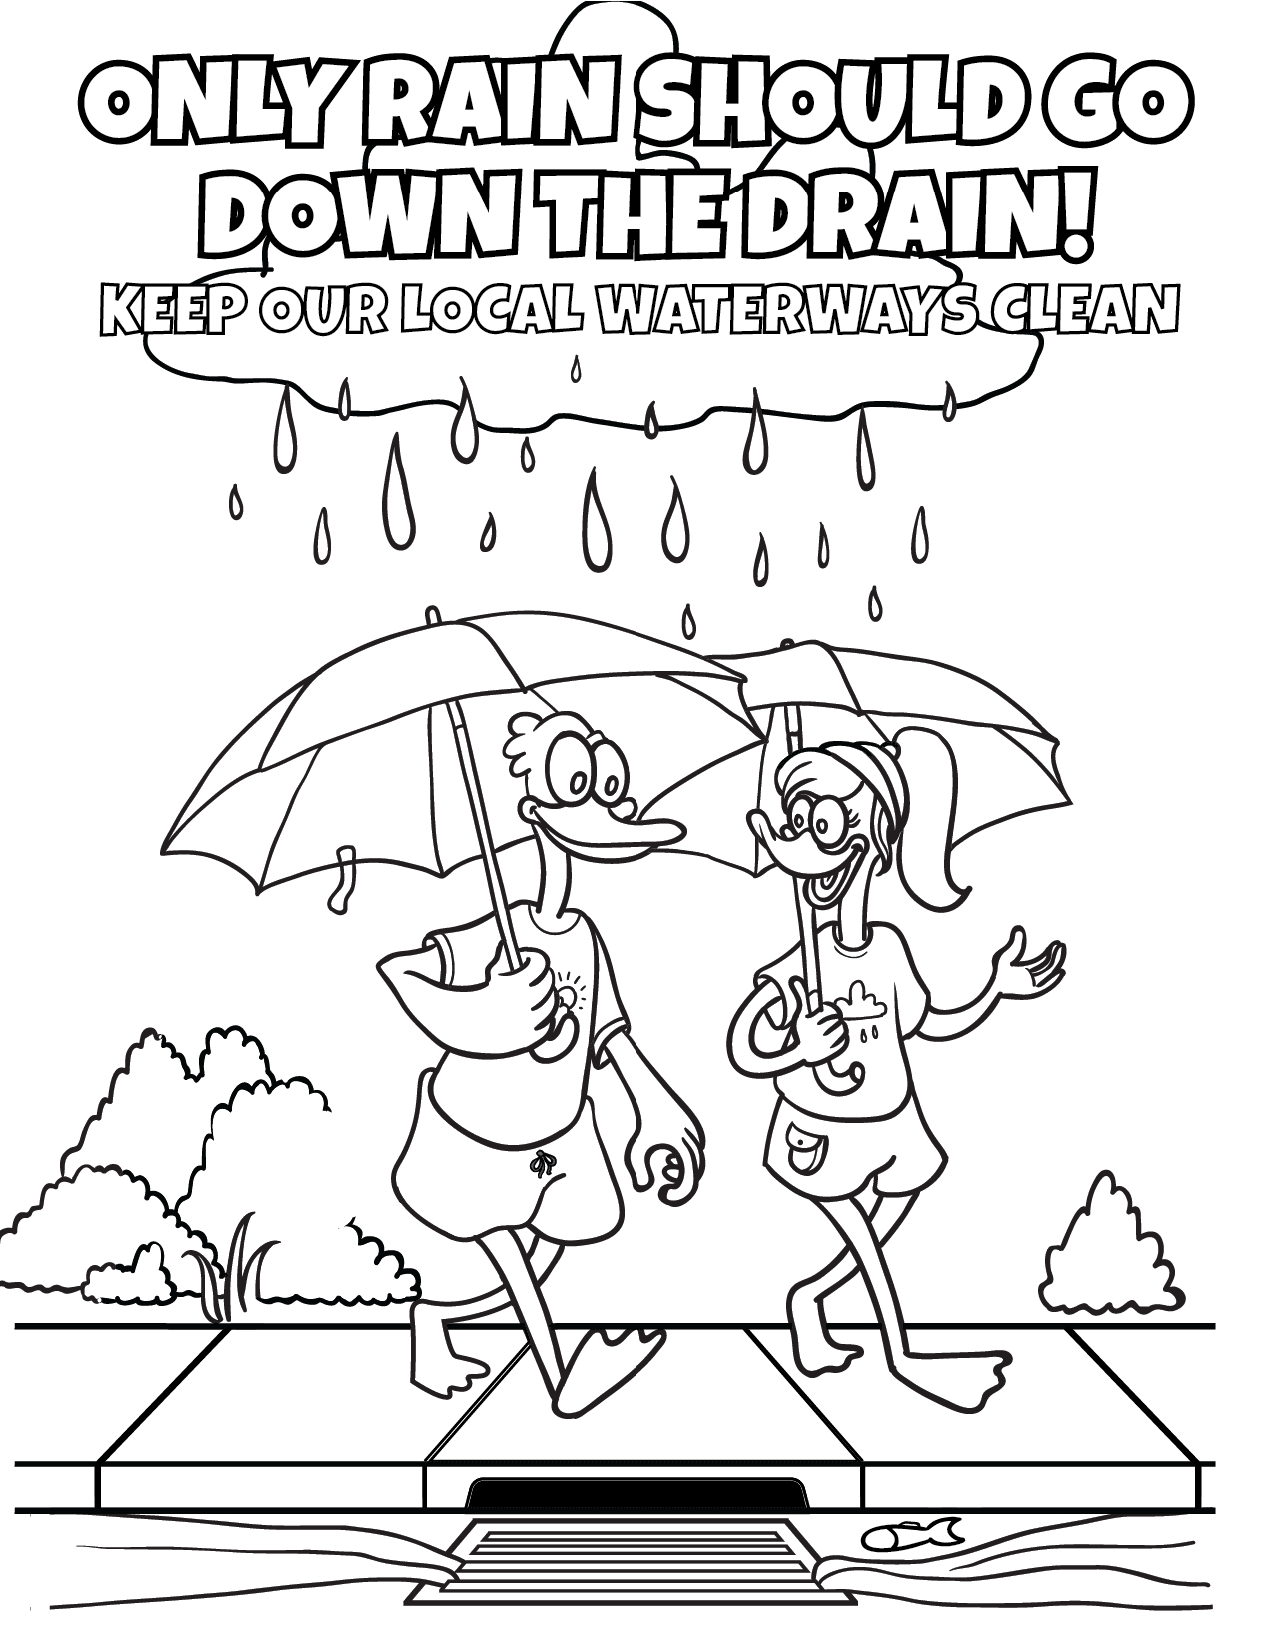 Only Rain Down the Storm Drain Coloring Sheet - English